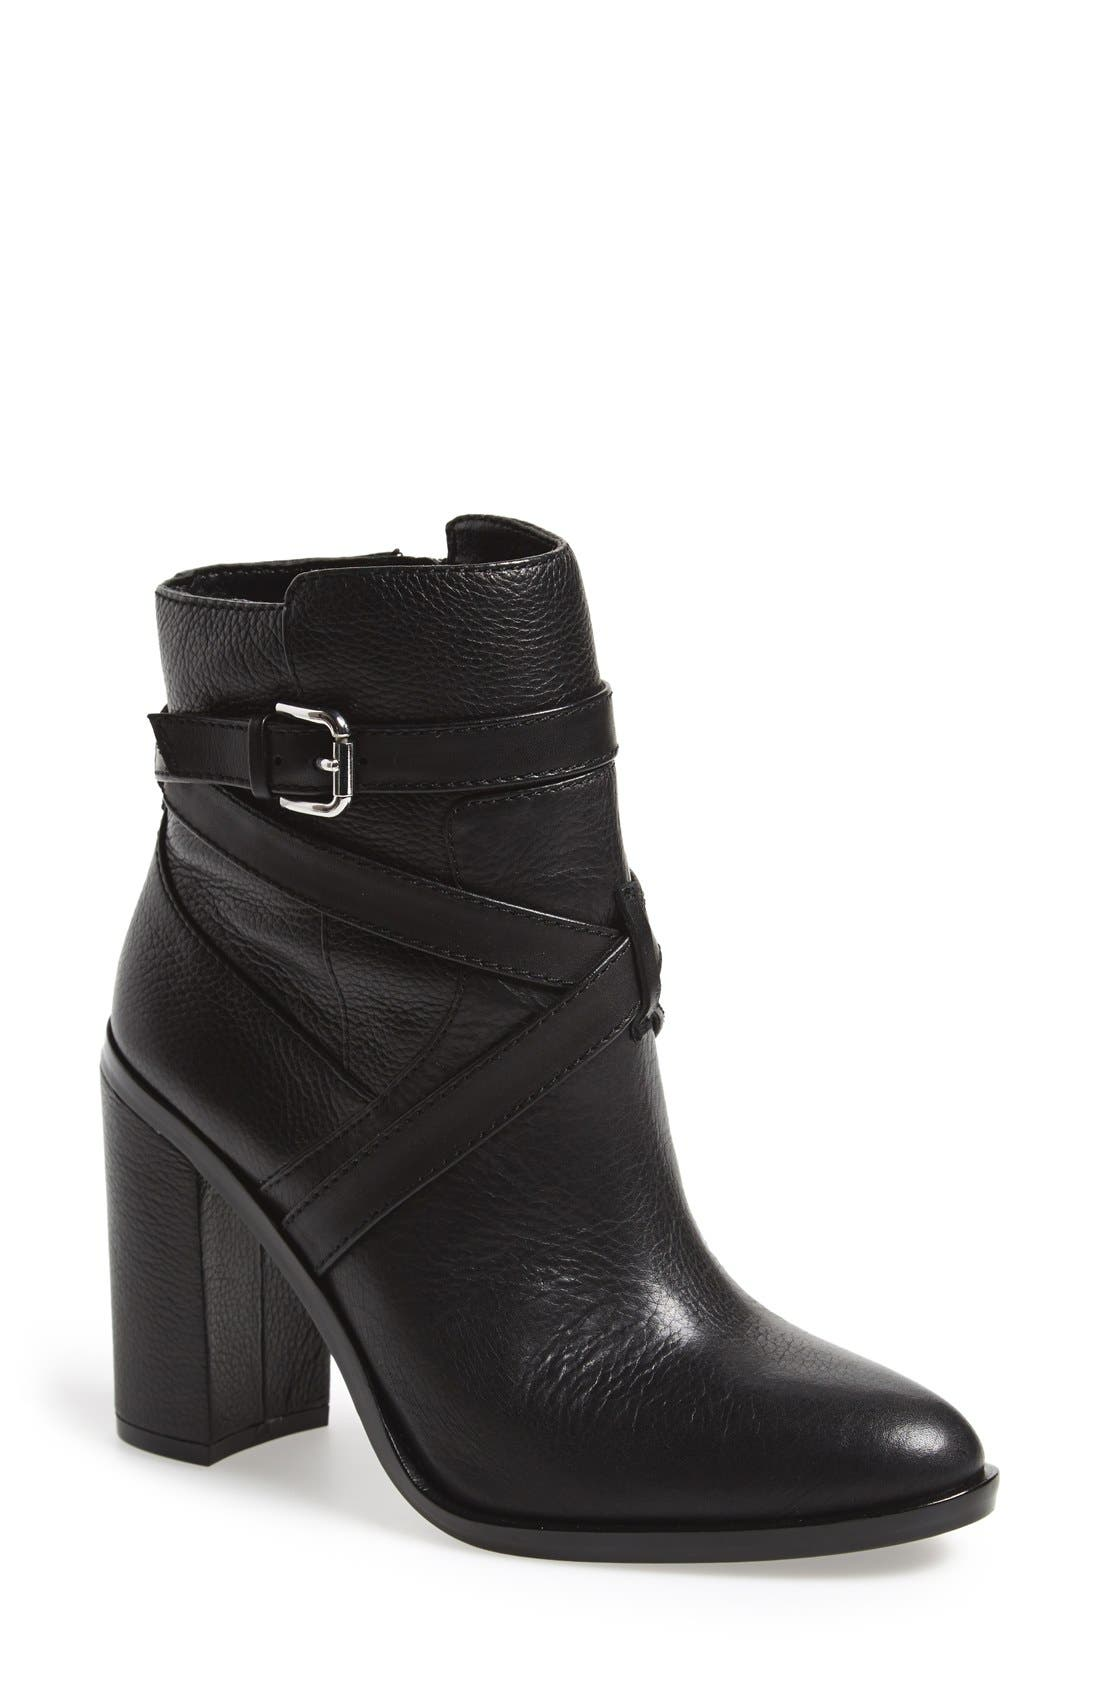 'Gravell' Belted Boot, Main, color, 001